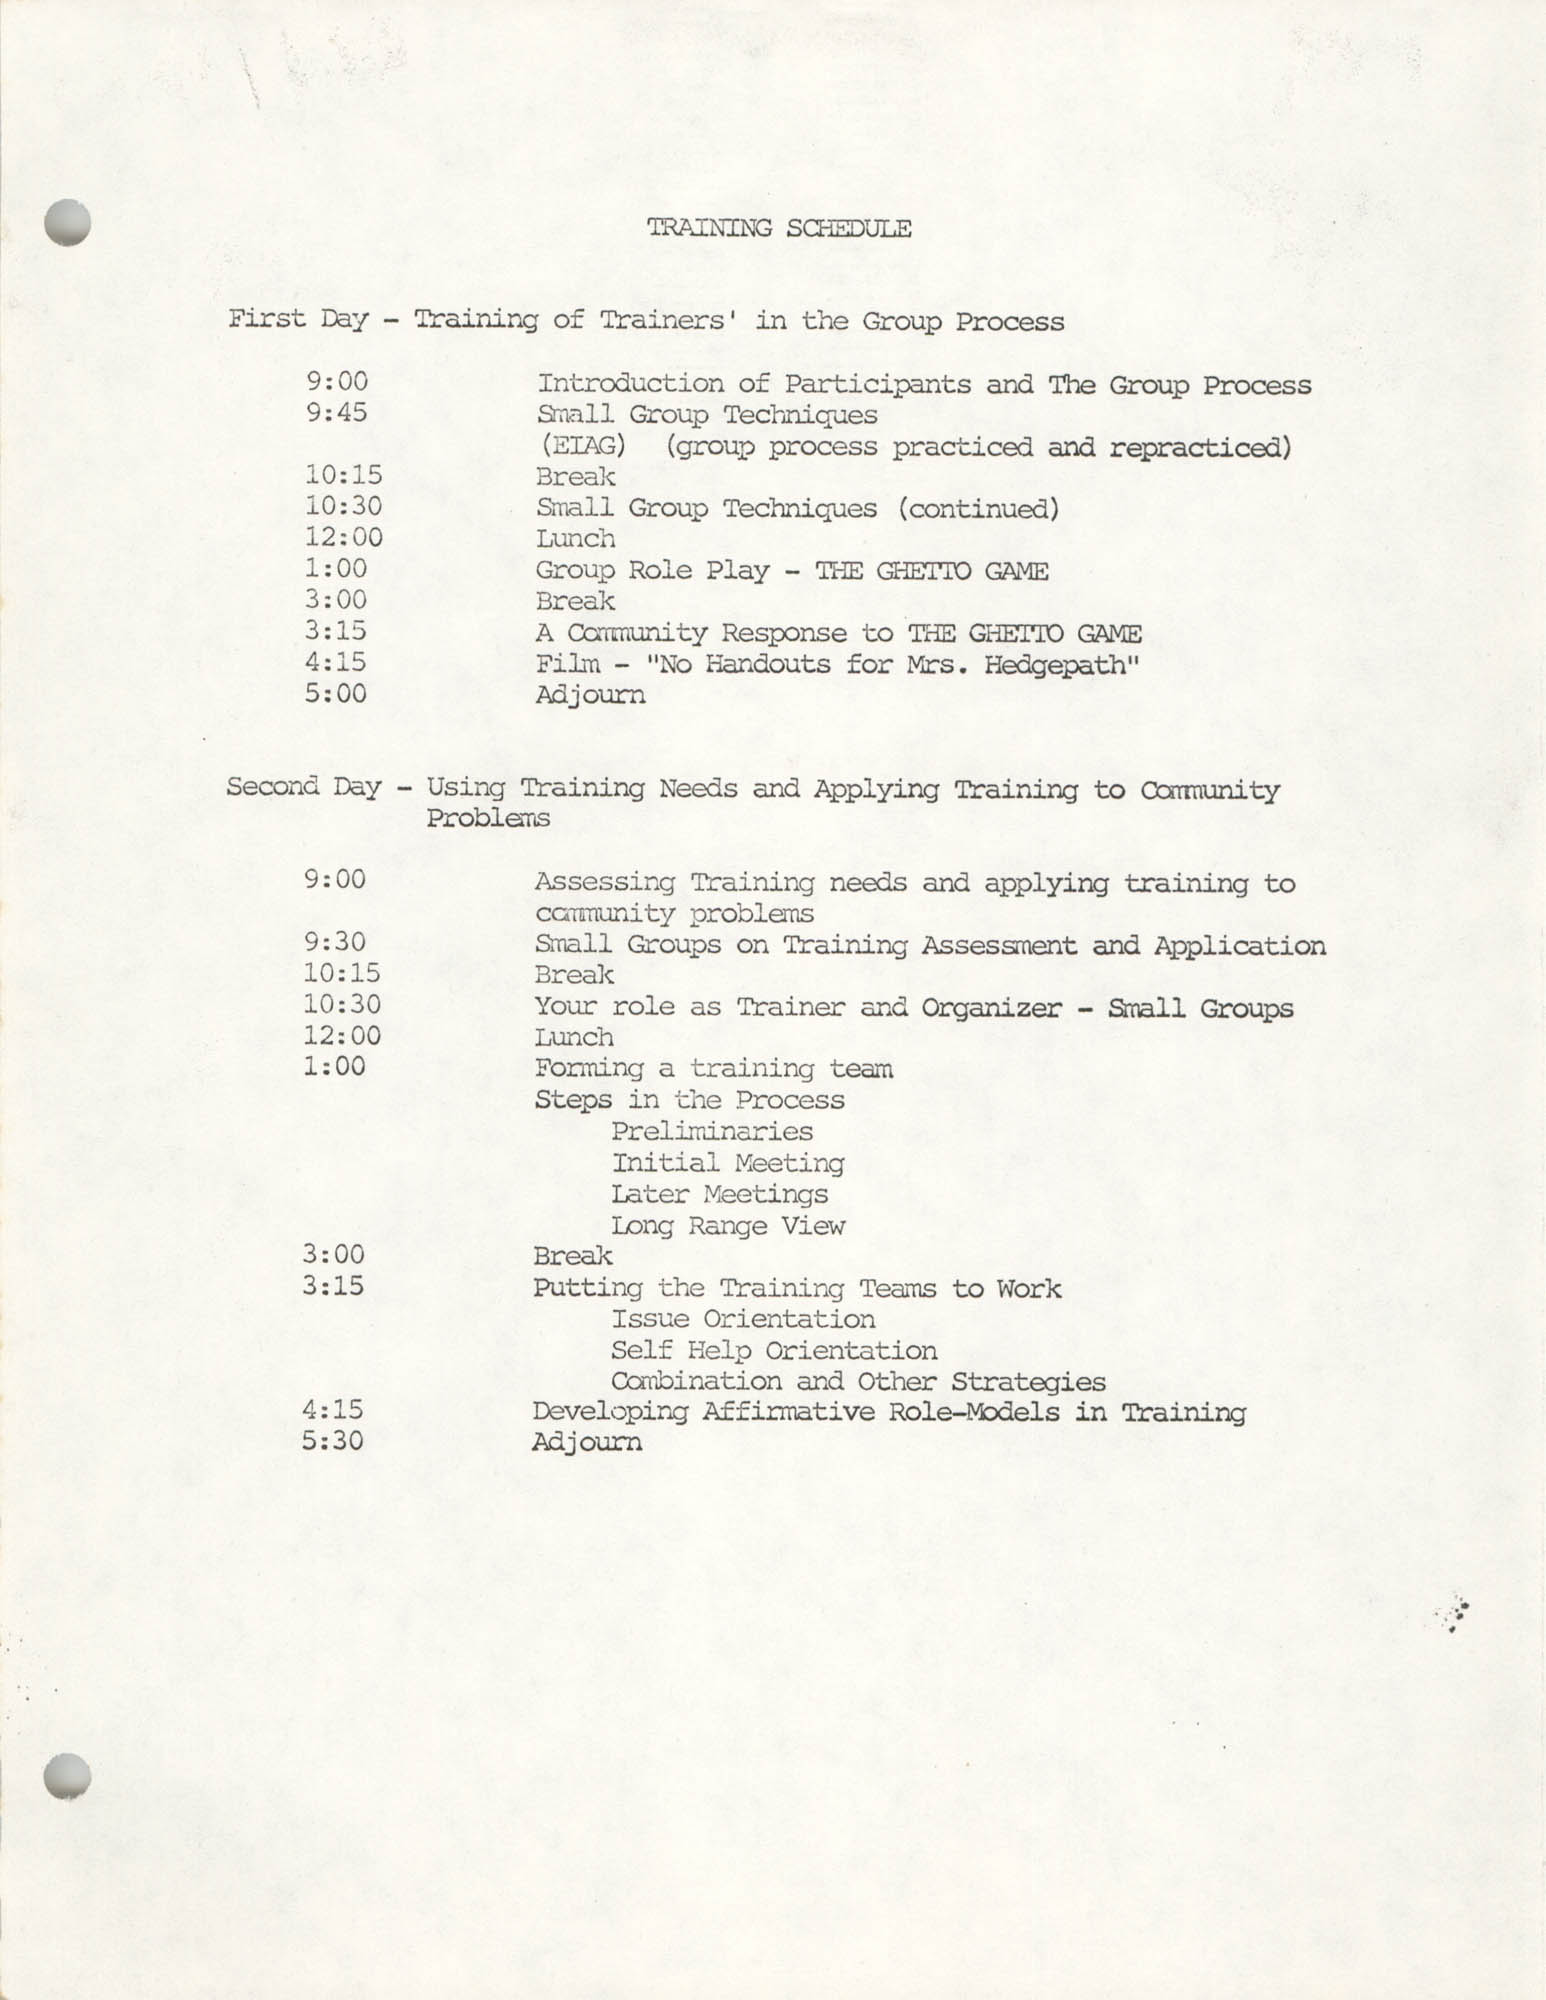 COBRA Training Schedule